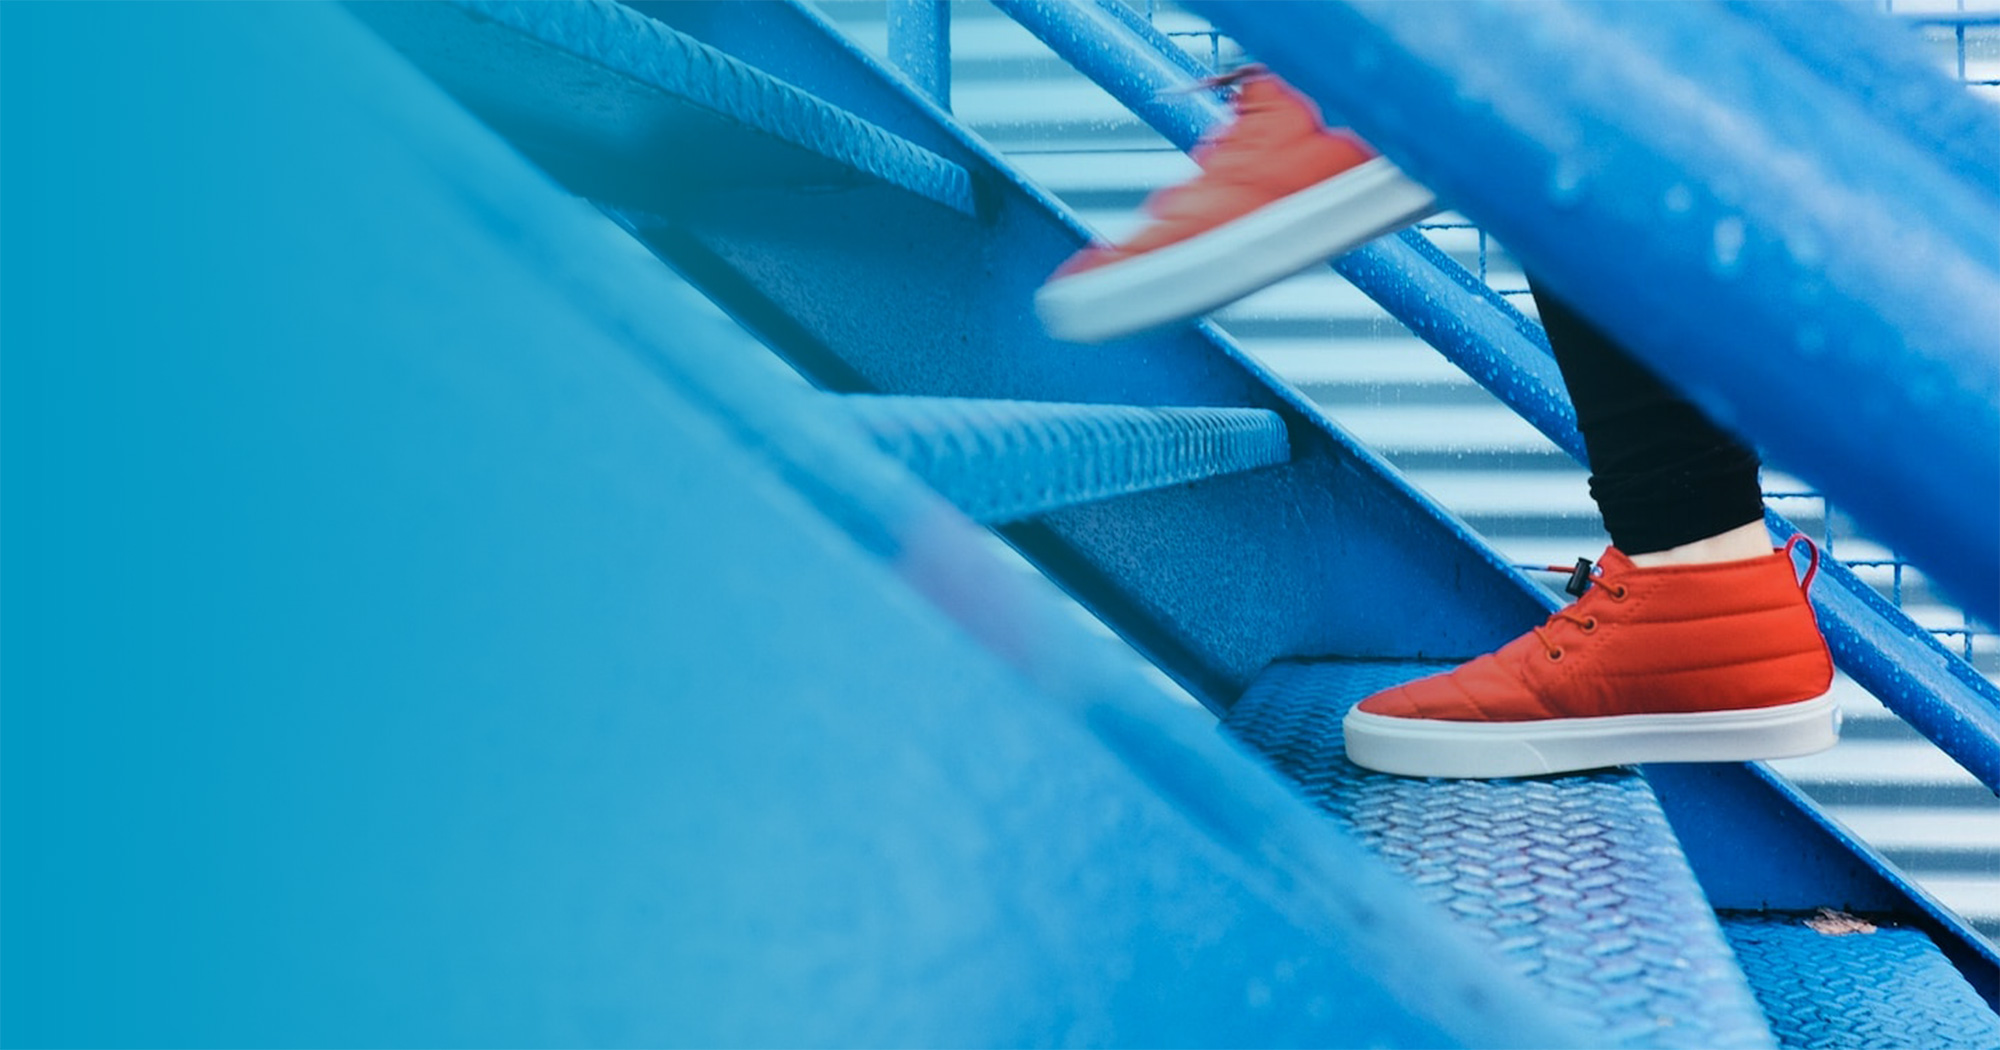 Person with orange sneakers climbing up a blue metal staircase